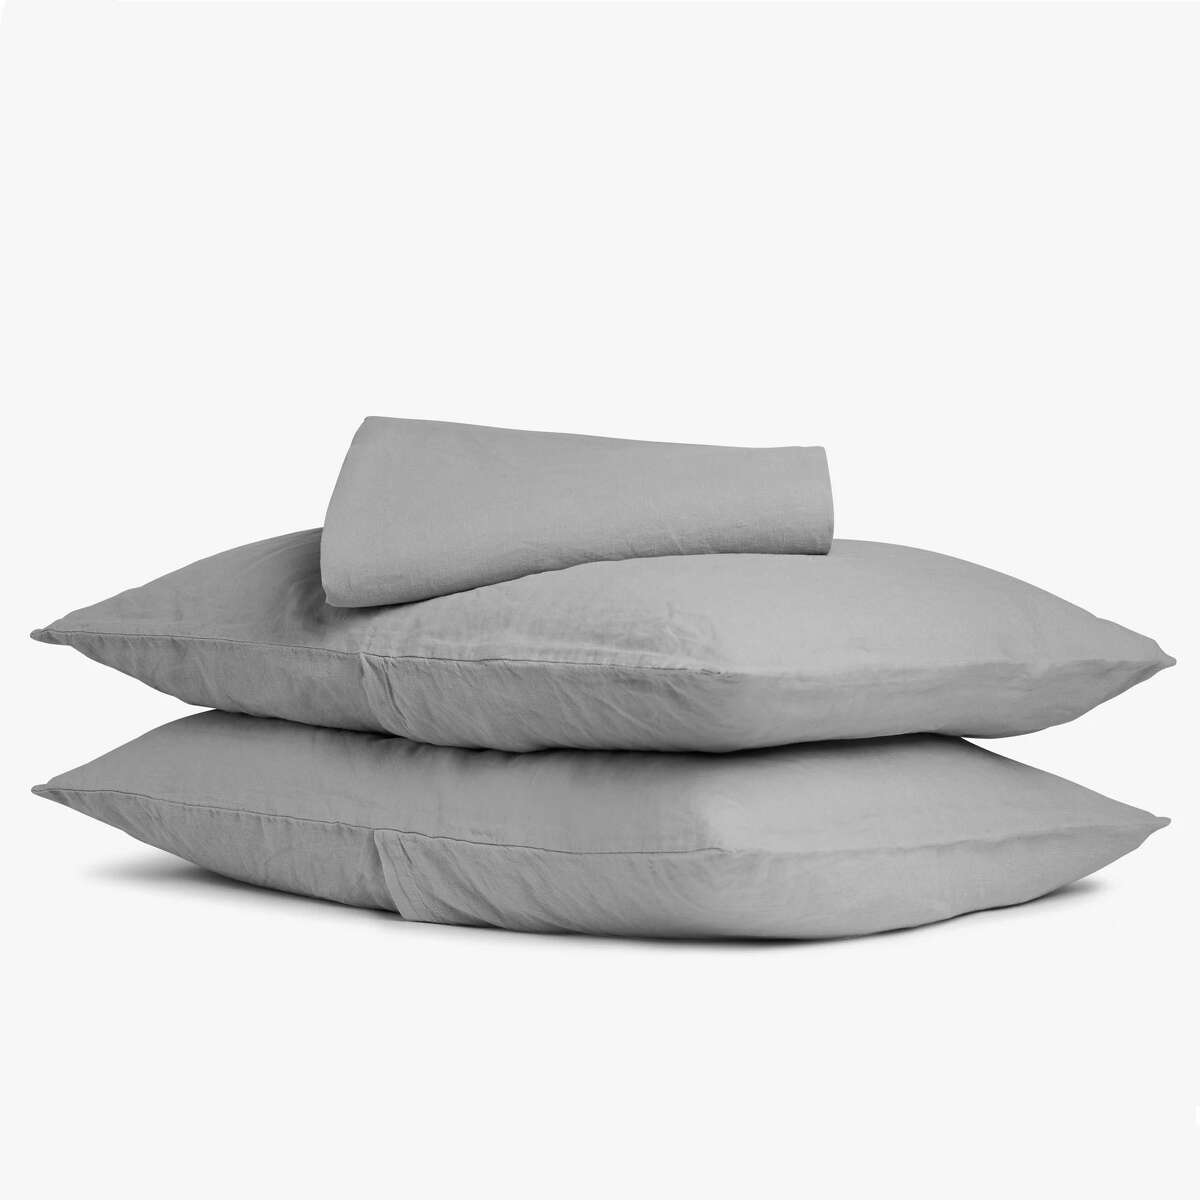 Linen Sheet Set: $169.00 Shop Now Parachute's popular linen sheets were the favorite among our tester panel: They earned the highest softness and overall feel scores compared to other linen fabrics. They also held up during our durability tests, but they did have a noticeably wrinkled appearance after washing (which is typical for linen). Keep in mind: This three-piece set has a fitted sheet and two pillowcases; you'll need to pay extra if you want to add the flat sheet.